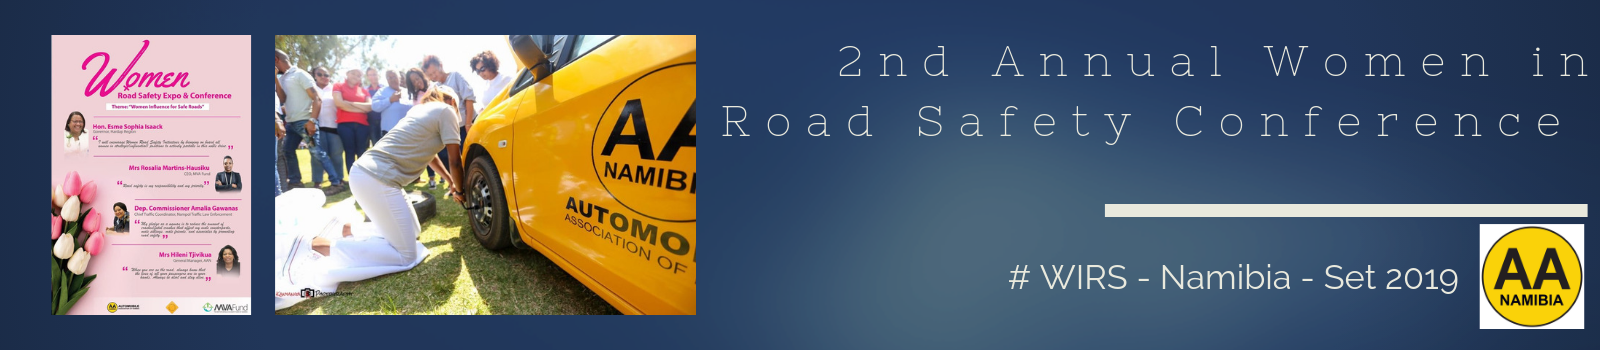 Namibia 2nd Annual Women in Road Safety Conference and Expo